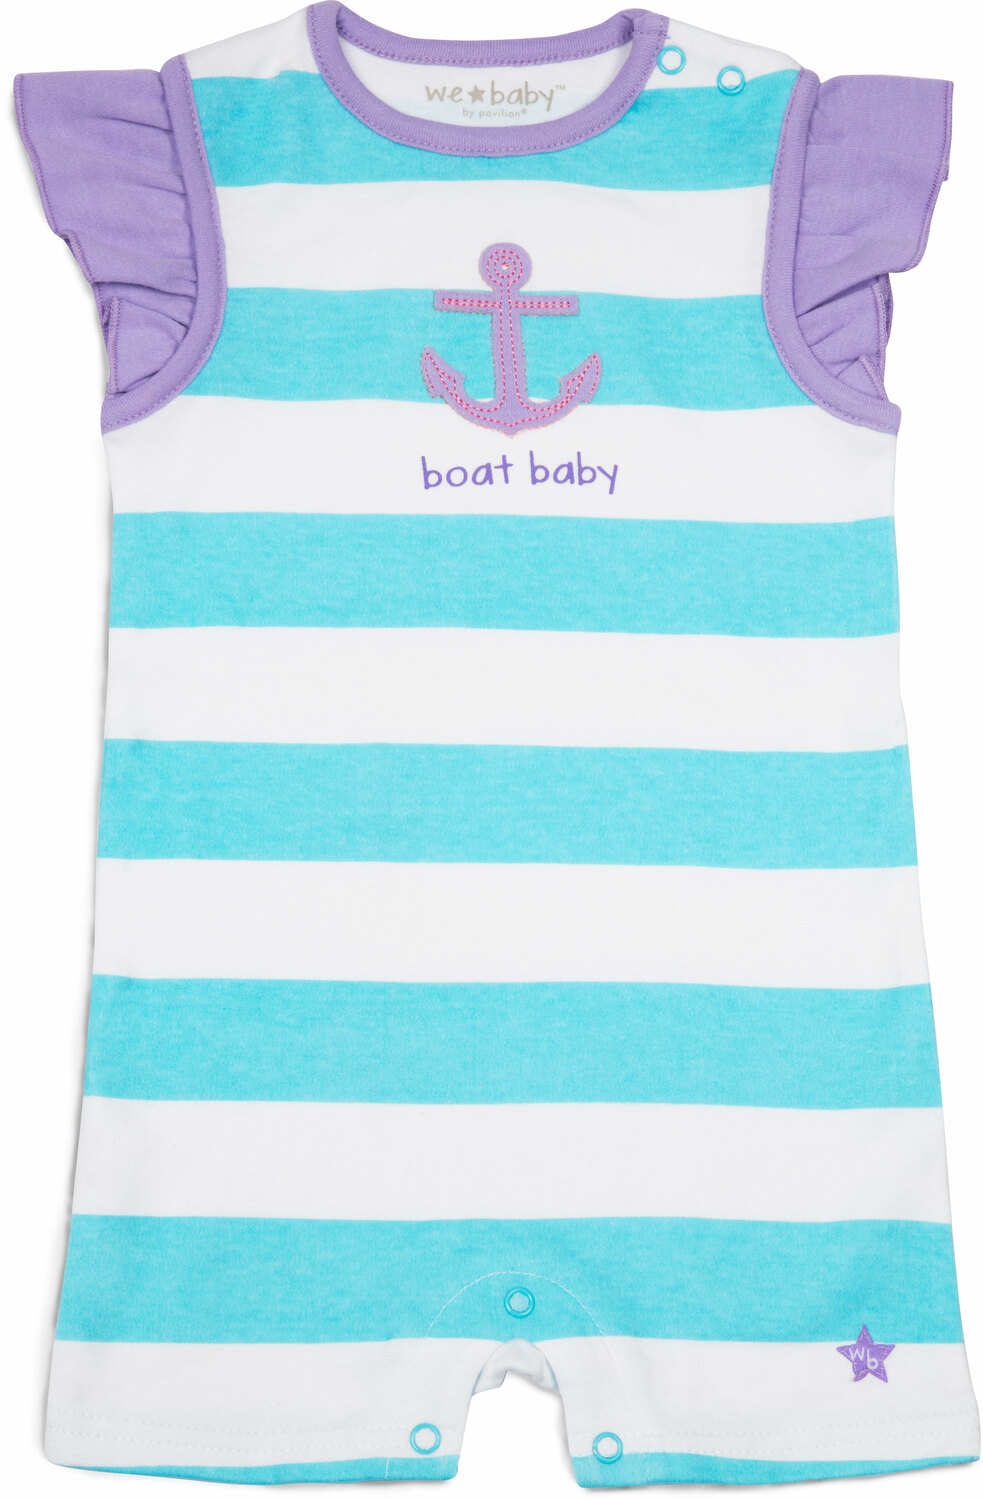 Boat Baby by We Baby - Boat Baby - 6-12 Month Girl Romper